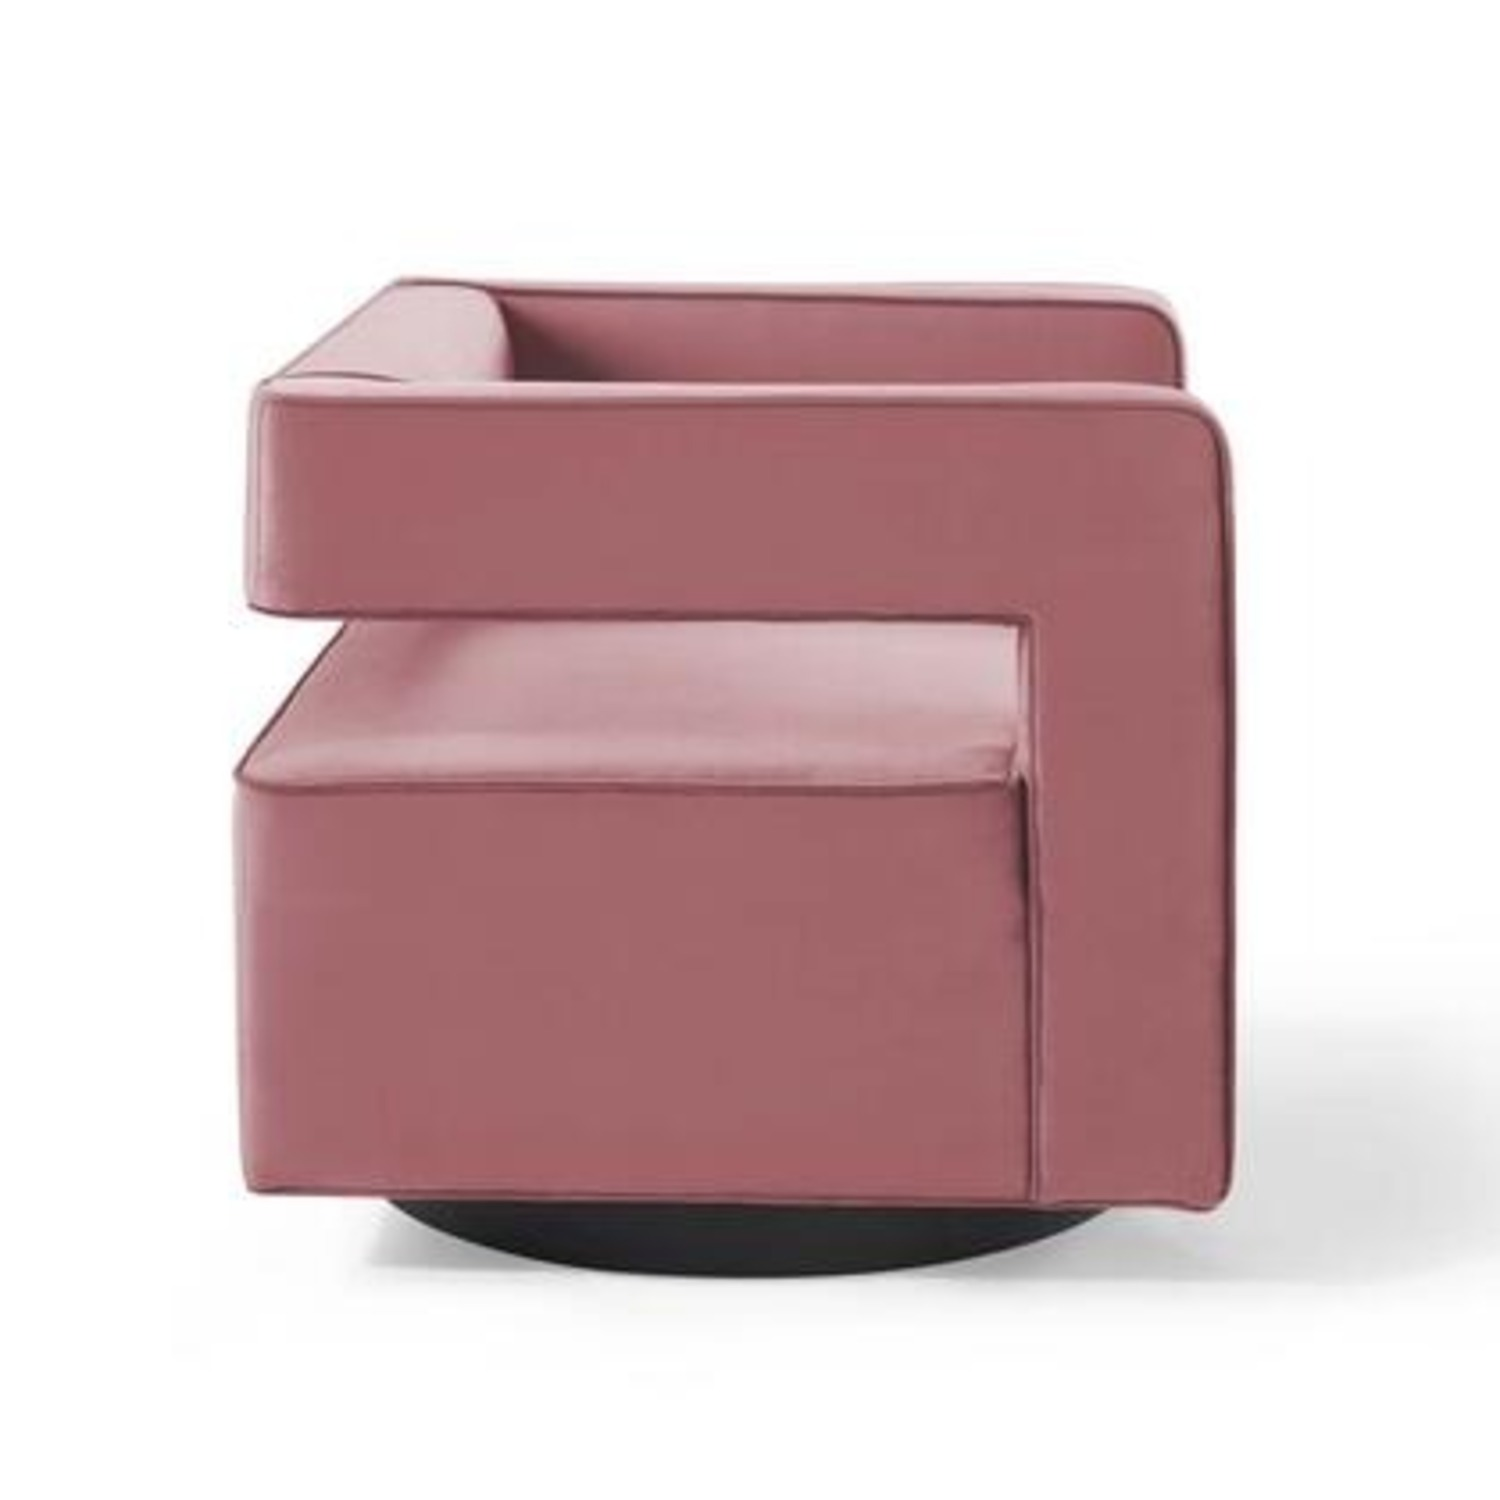 Armchair In Dusty Rose W/ Squared Cutaway Back - image-2